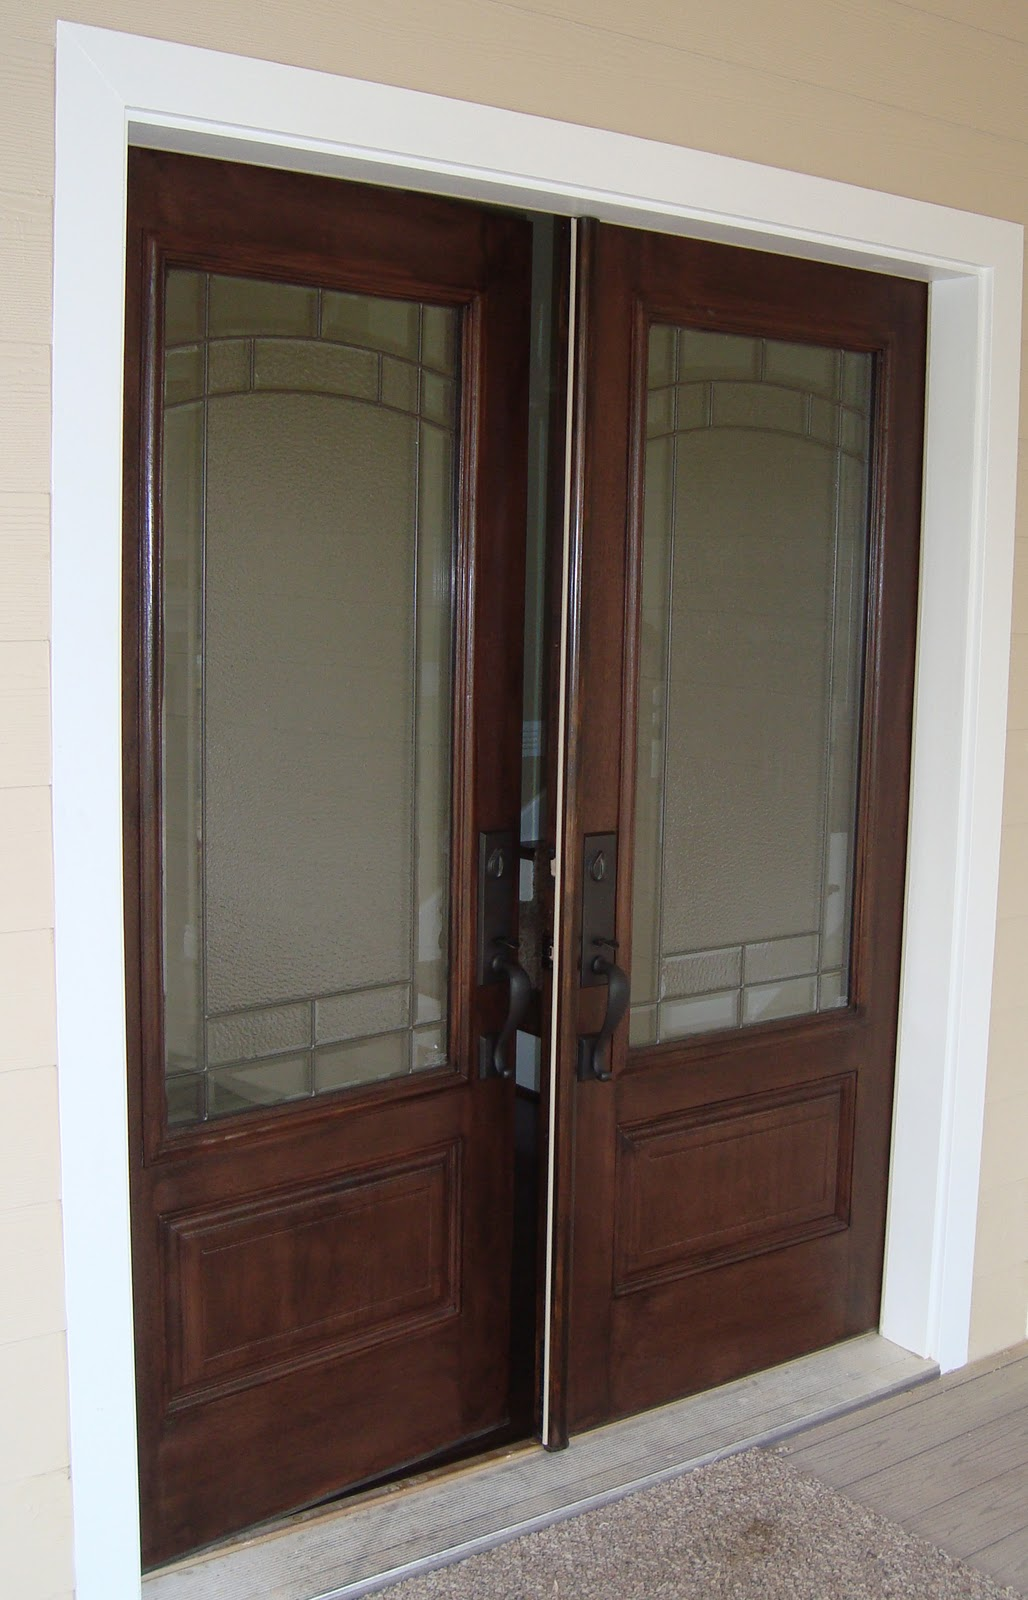 1600 #3E2A23 ABE Painting: Enjoy Pictures From A Few Of Our 2010 Jobs. image Stainable Fiberglass Entry Doors 40231028